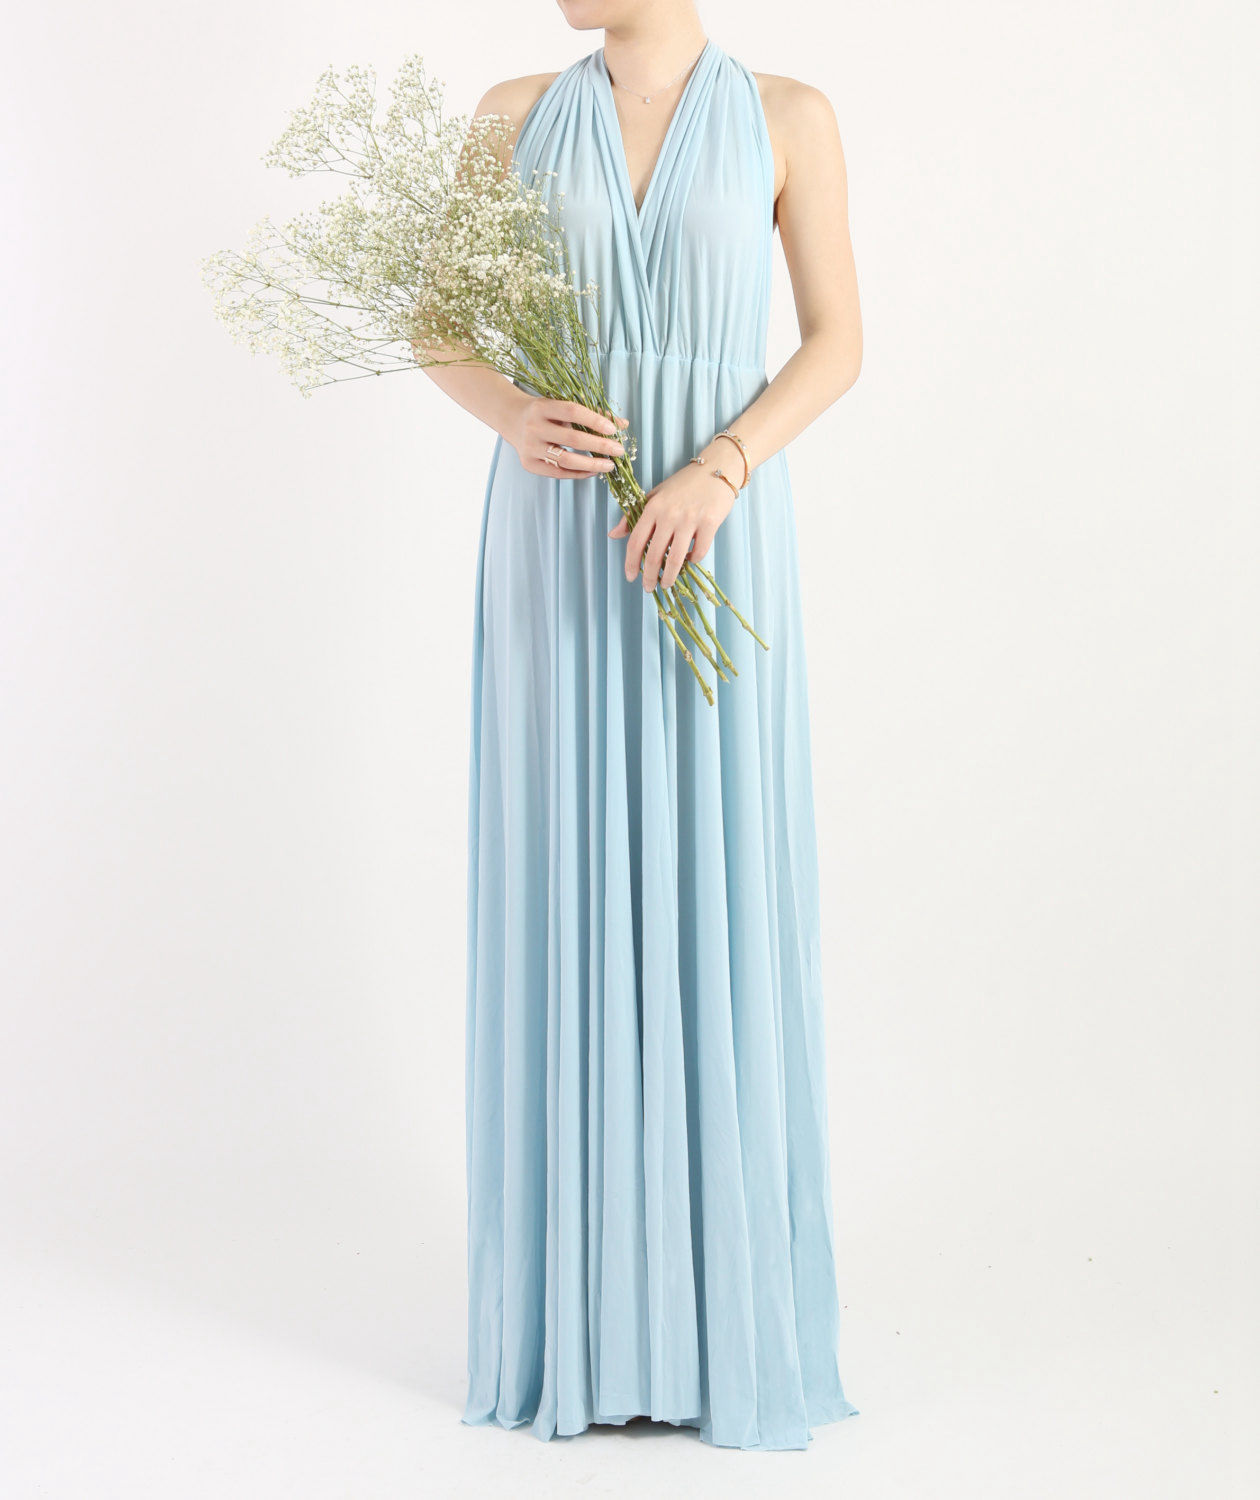 Light Blue Infinity Bridesmaid Dress, Convertible Long Prom Dress ...